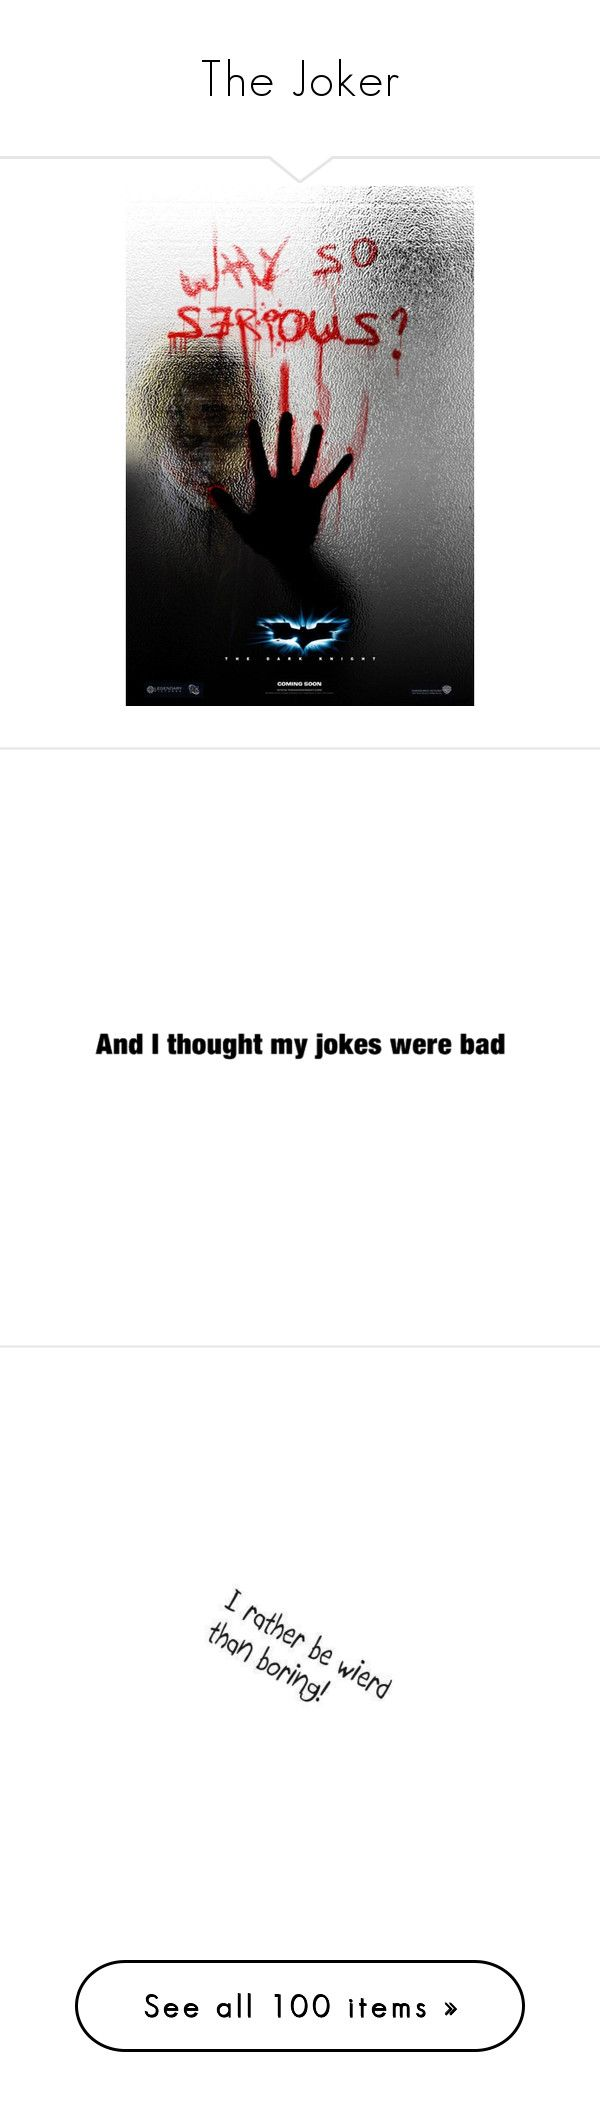 """""""The Joker"""" by carissa-chaos ❤ liked on Polyvore featuring batman, joker, other, text, the joker, quotes, words, fillers, phrase and saying"""